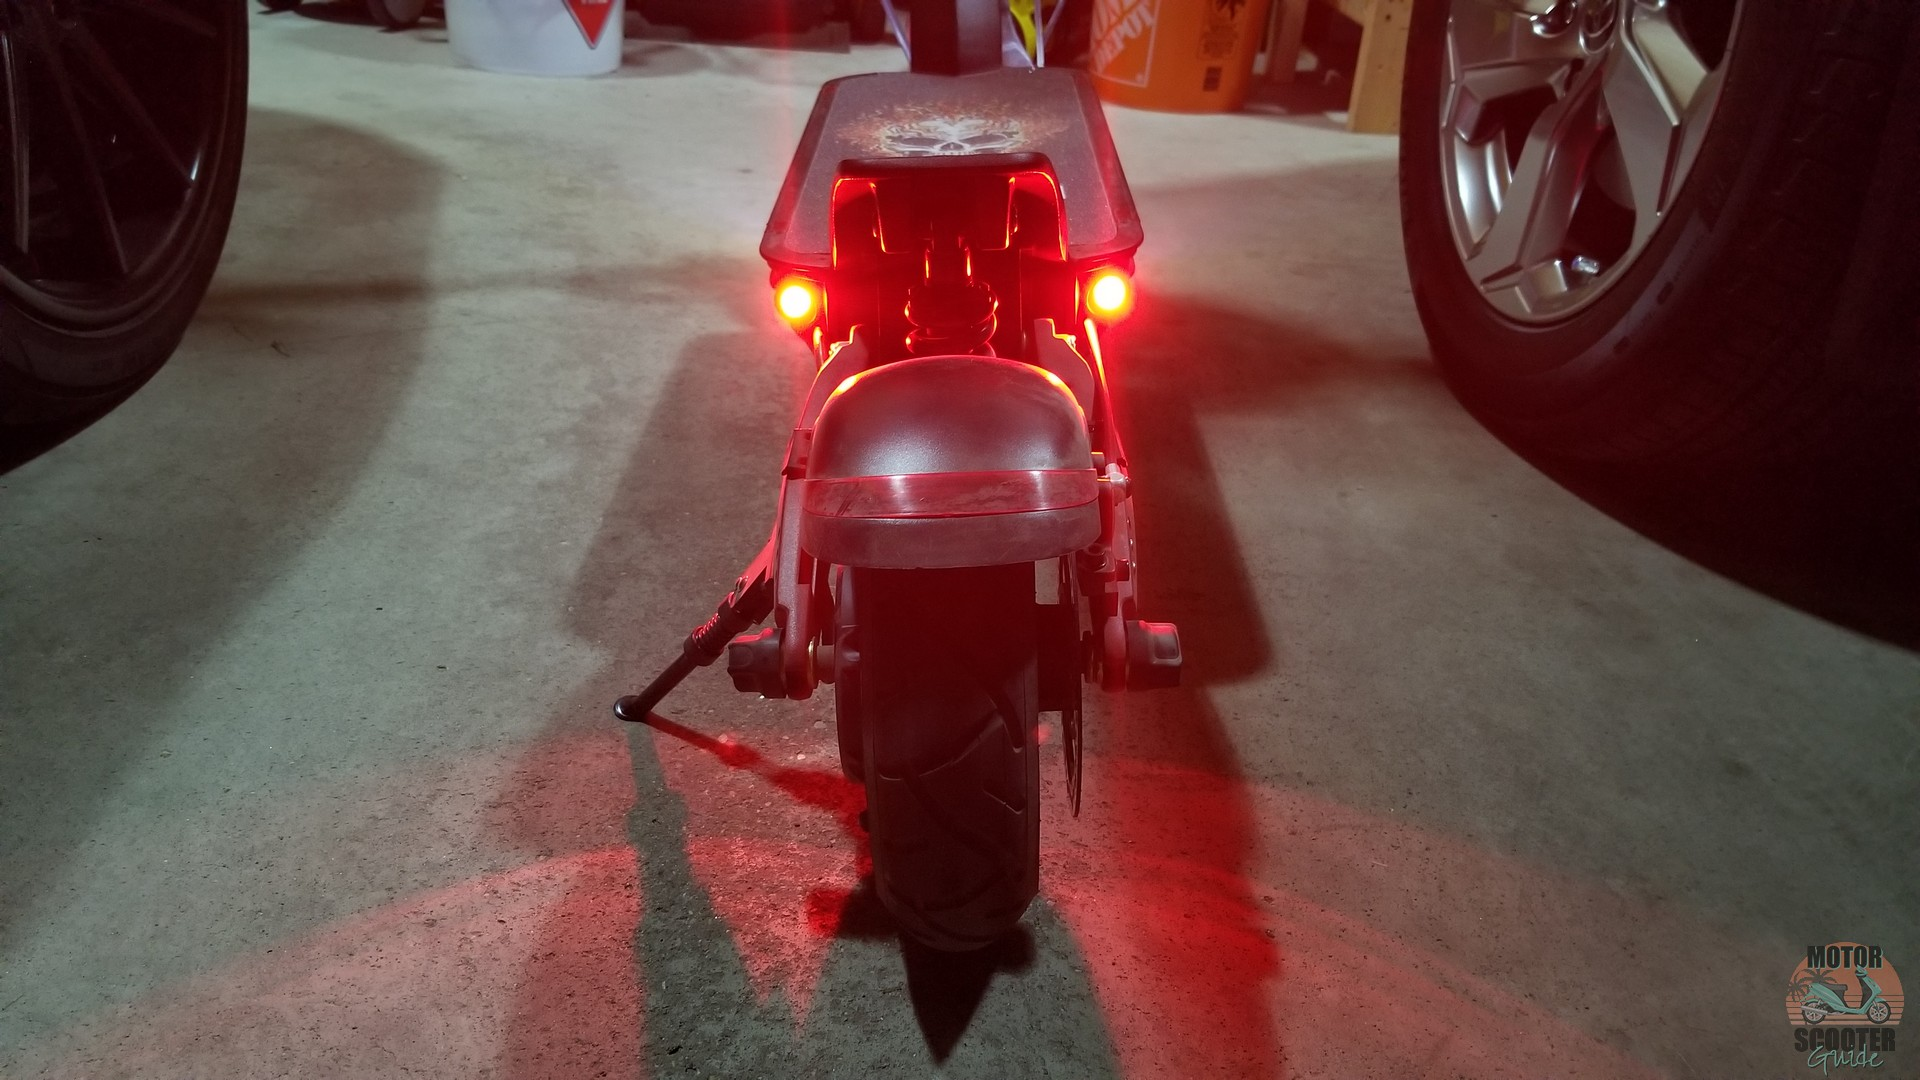 Red LED tail lights on the Varla Eagle One scooter